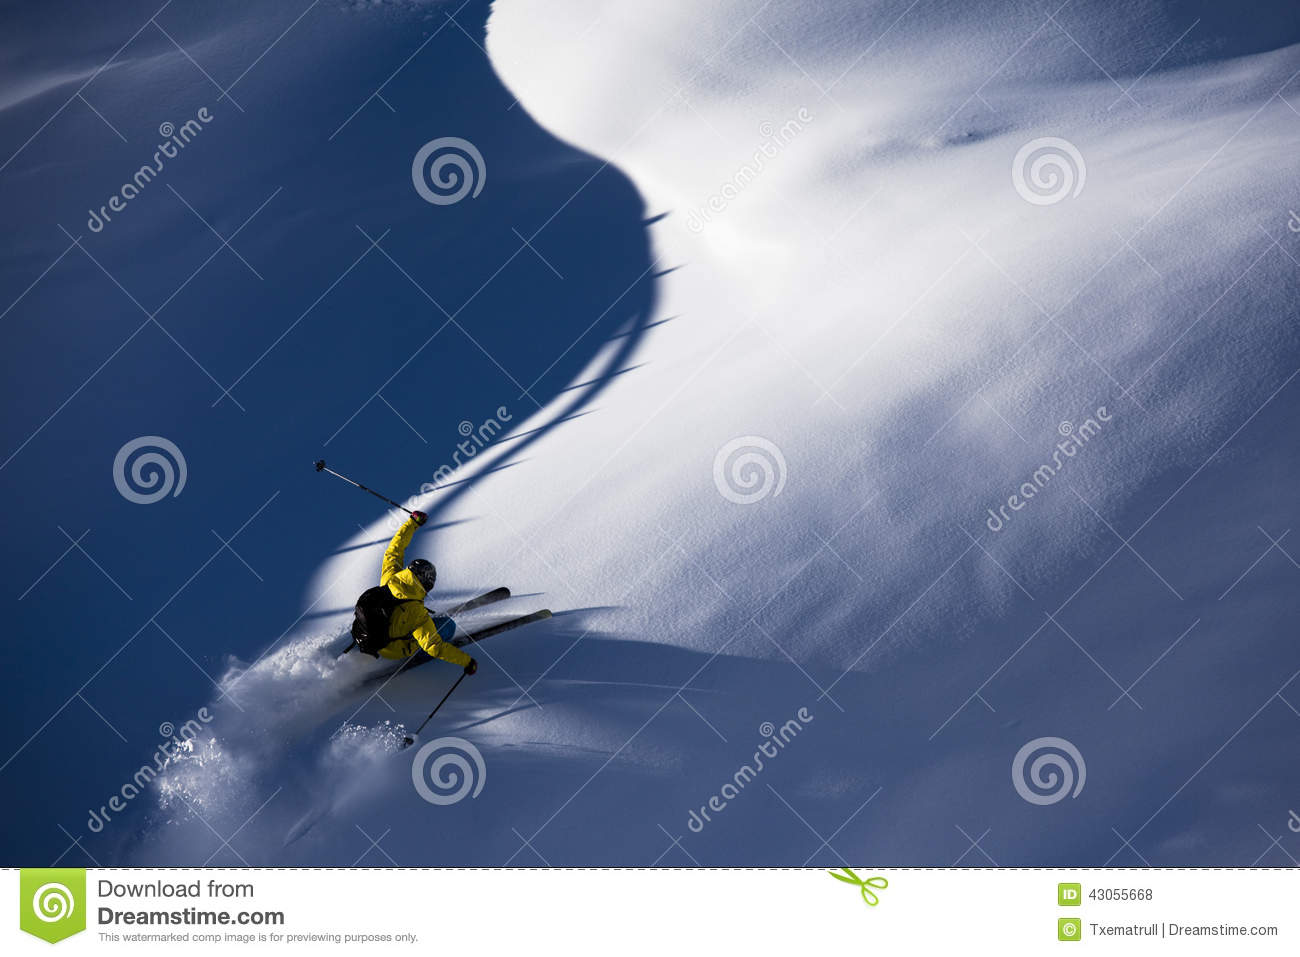 Skiing virgin powder